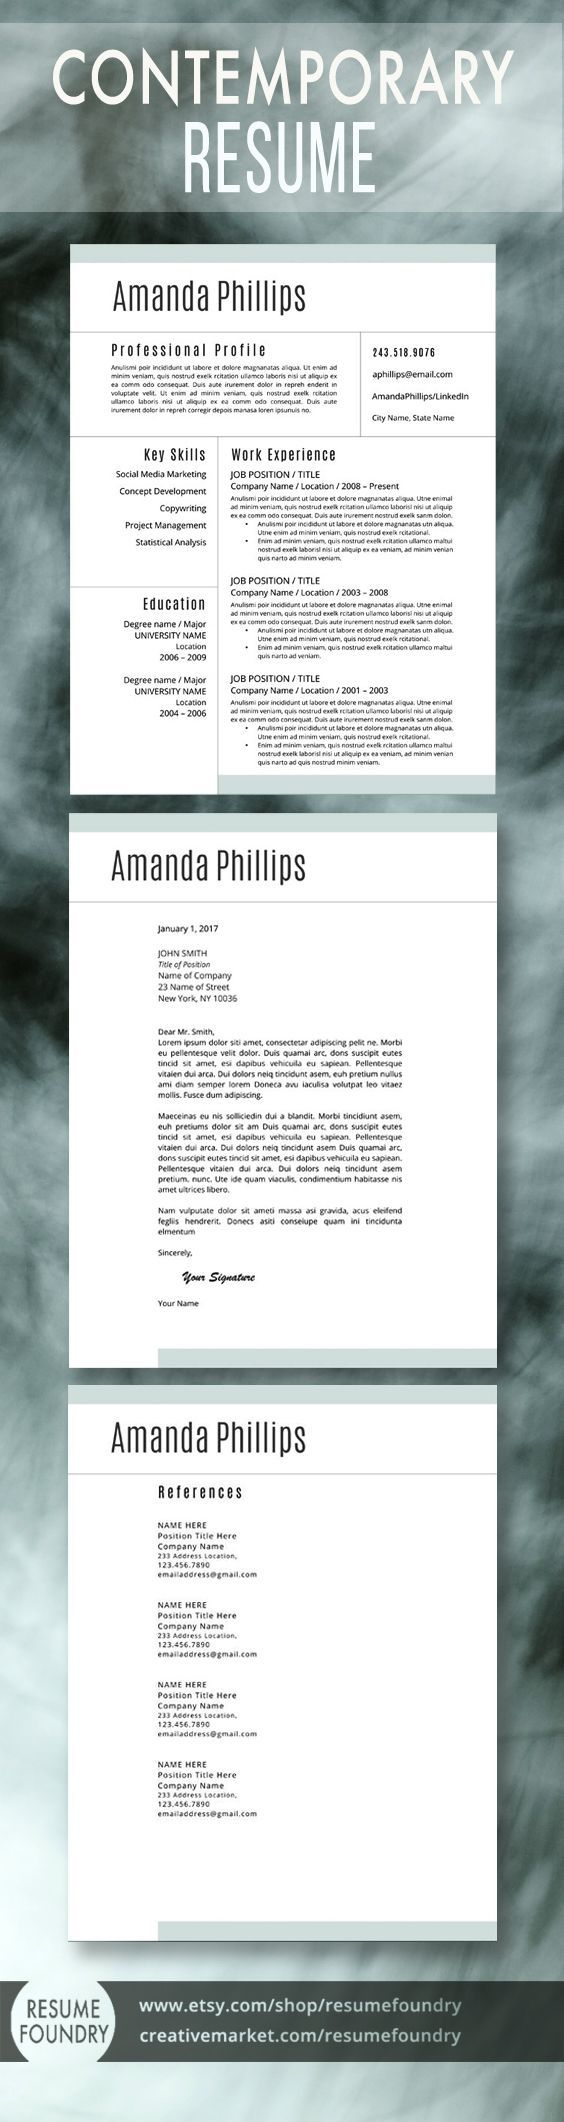 Reference Page Resume Template Delectable Modern Resume Template For Word 13 Page Resume  Cover Letter  .